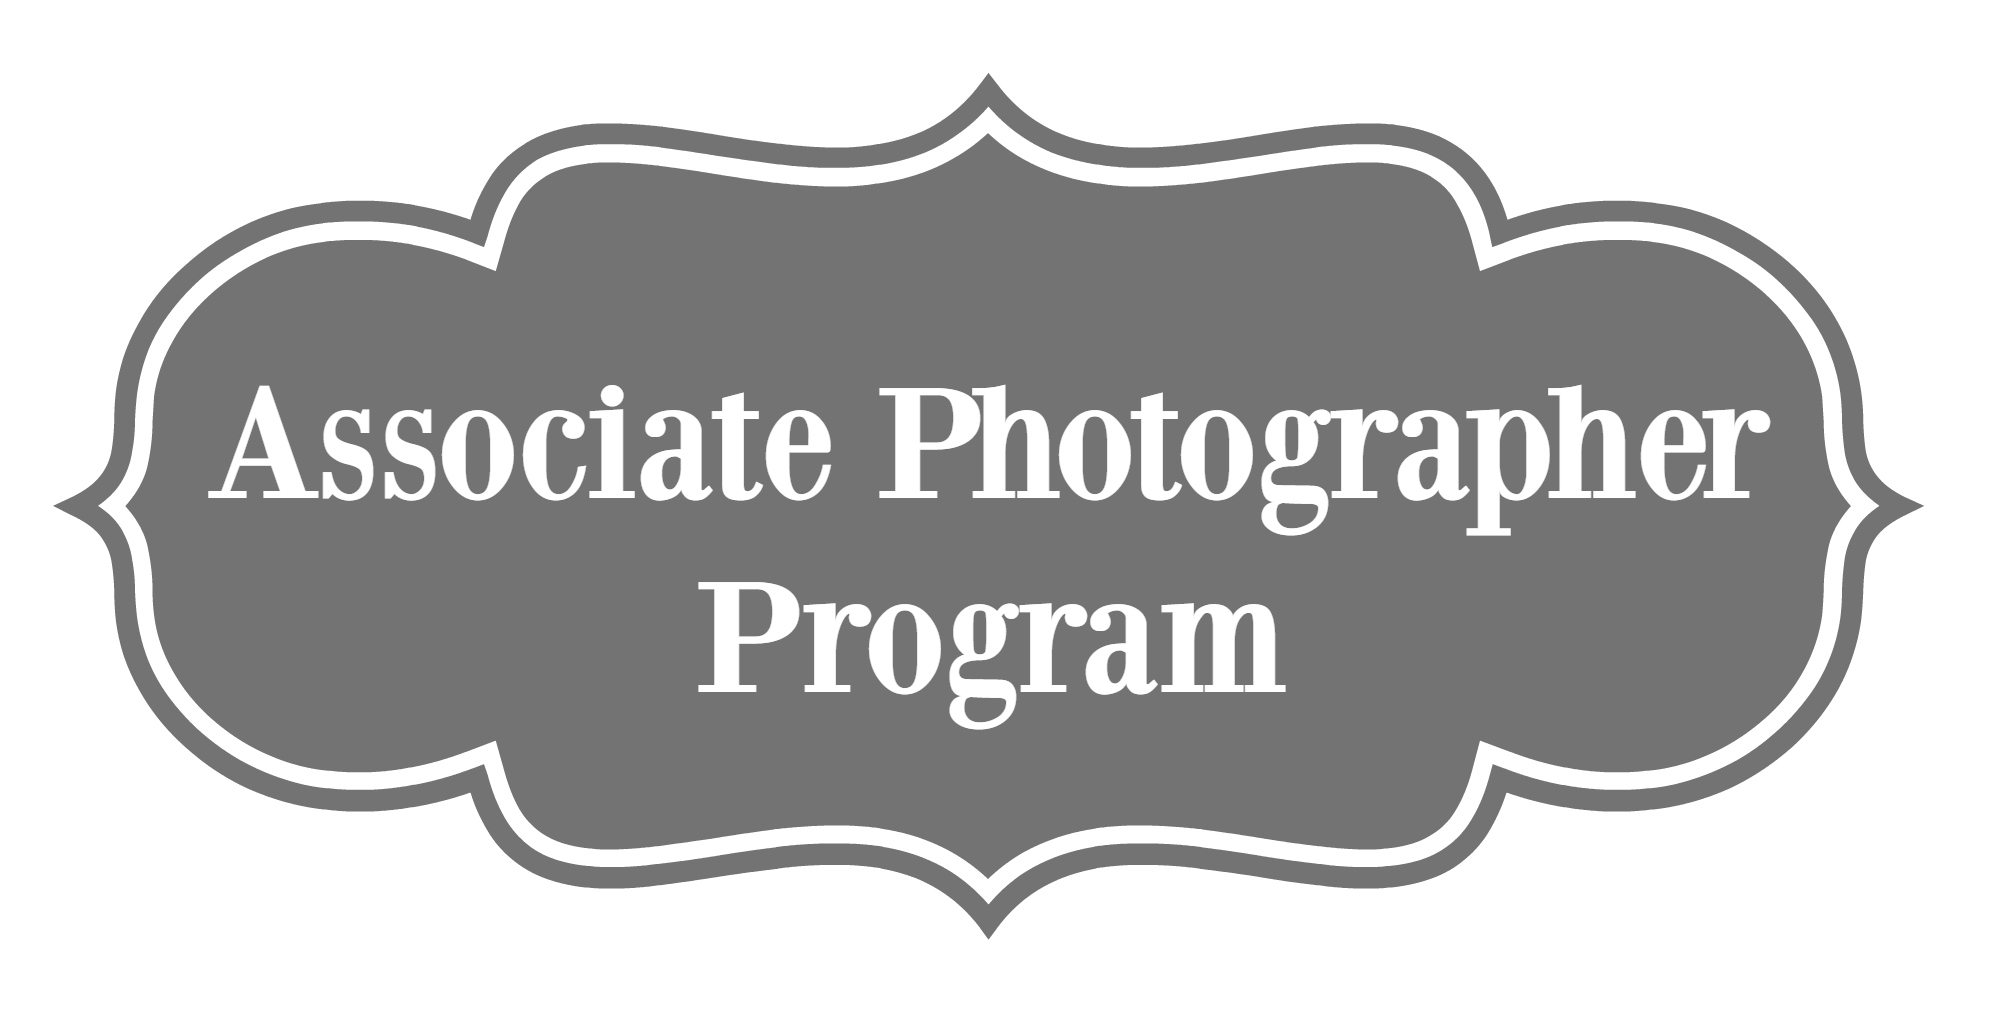 Associate Photographer Program.jpg